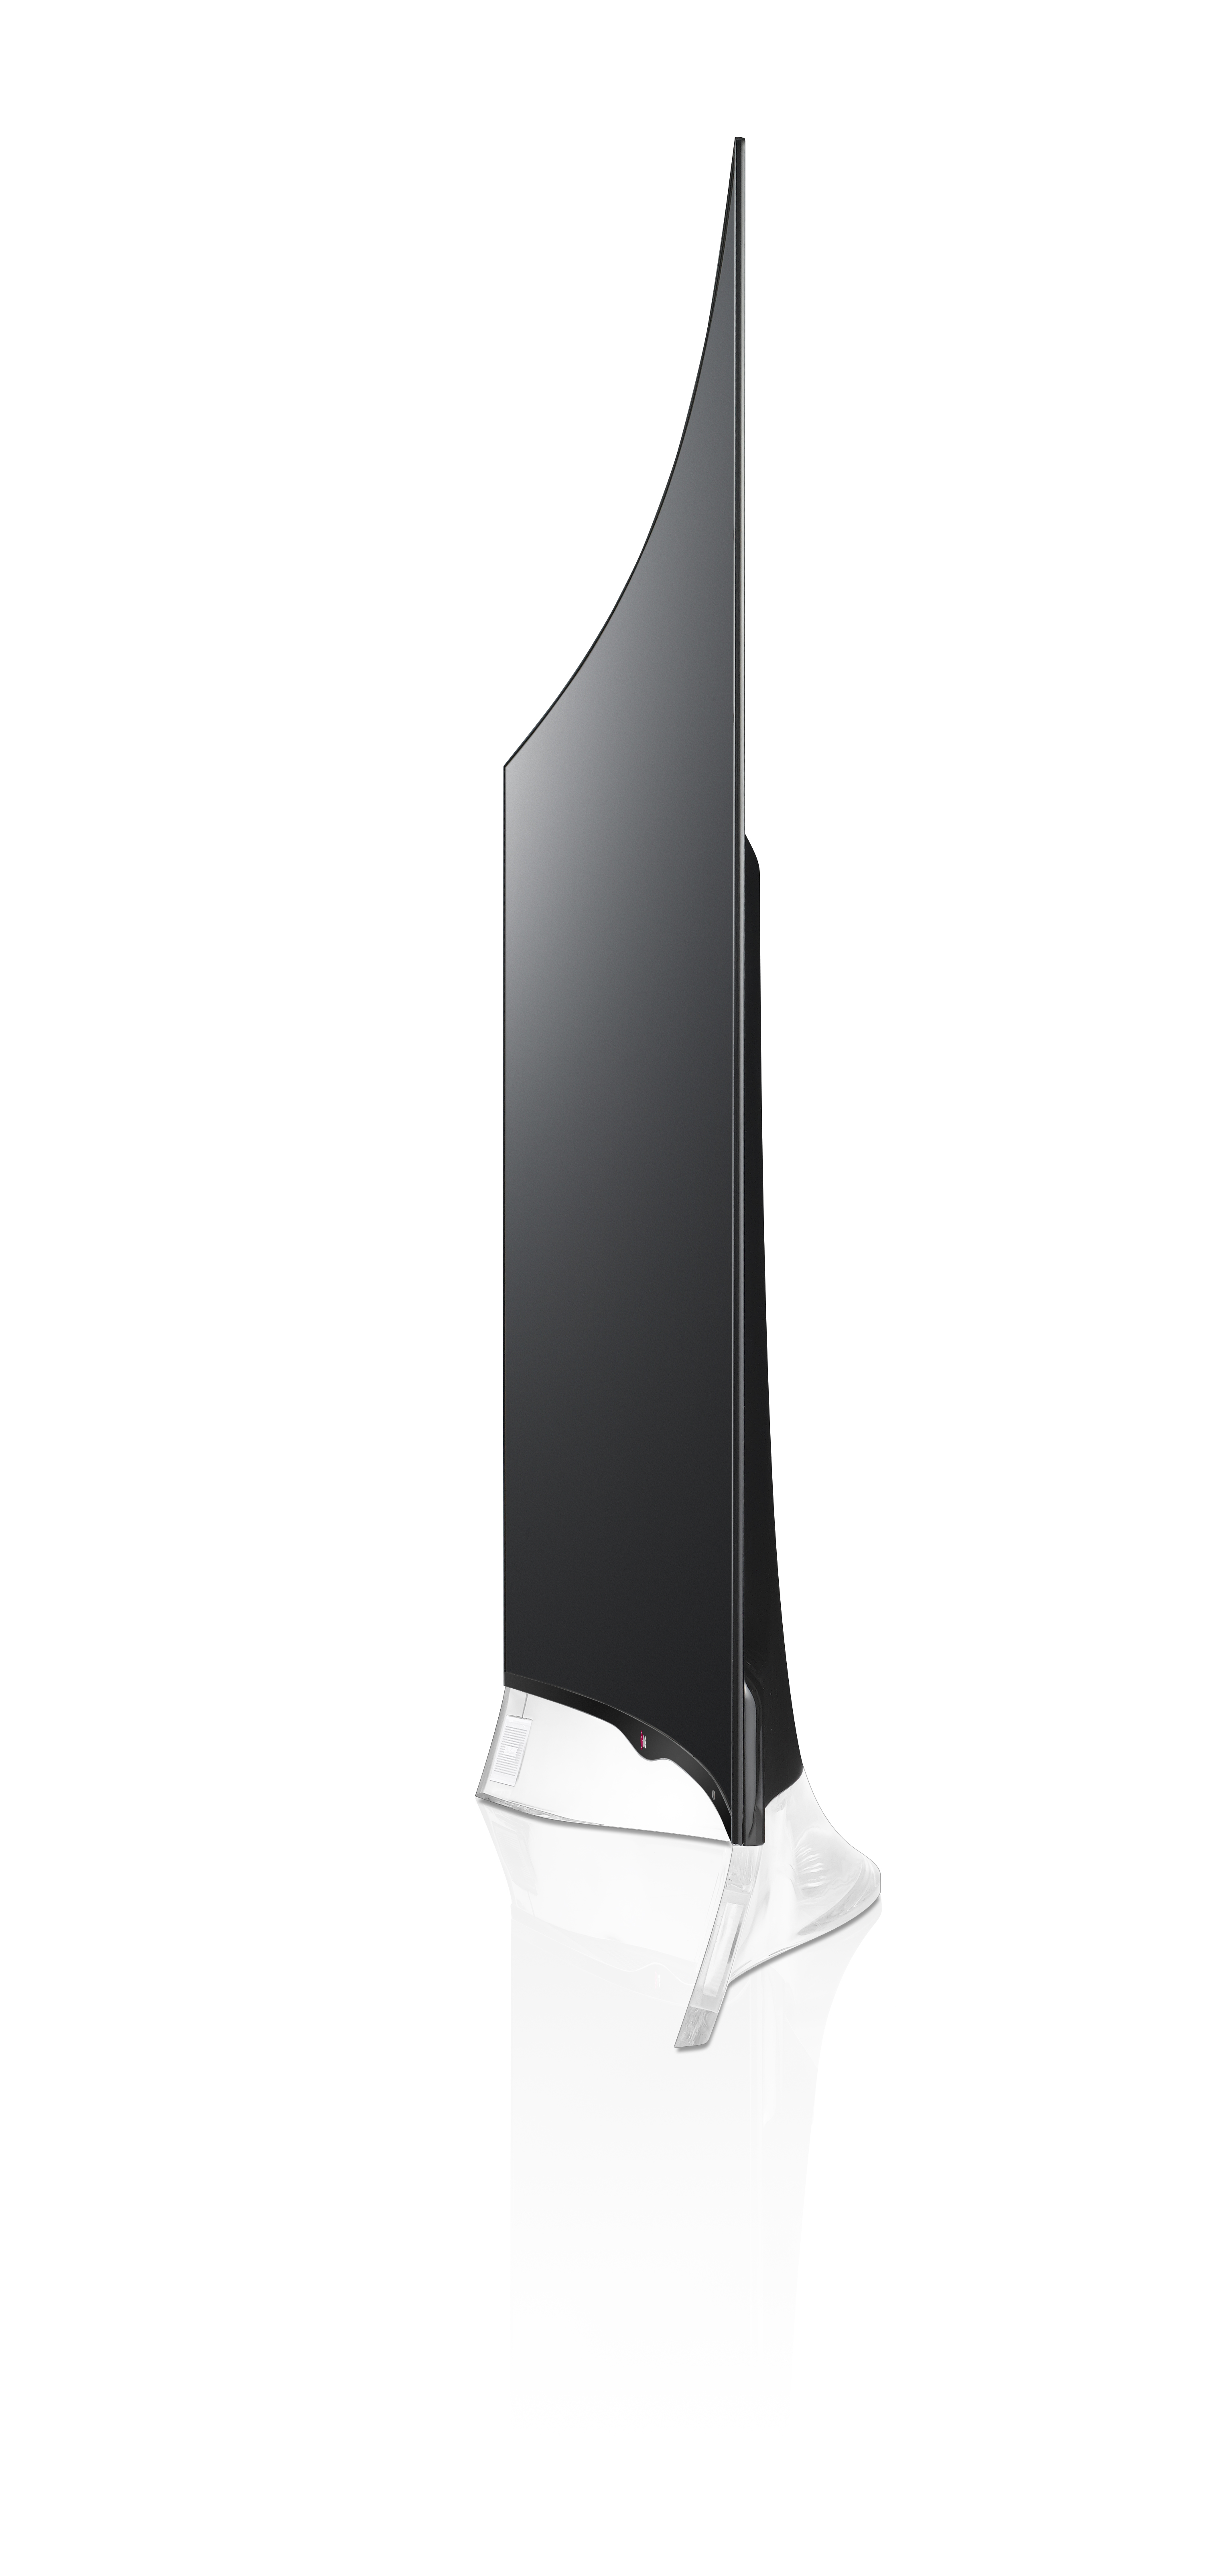 Side view of LG CURVED OLED TV